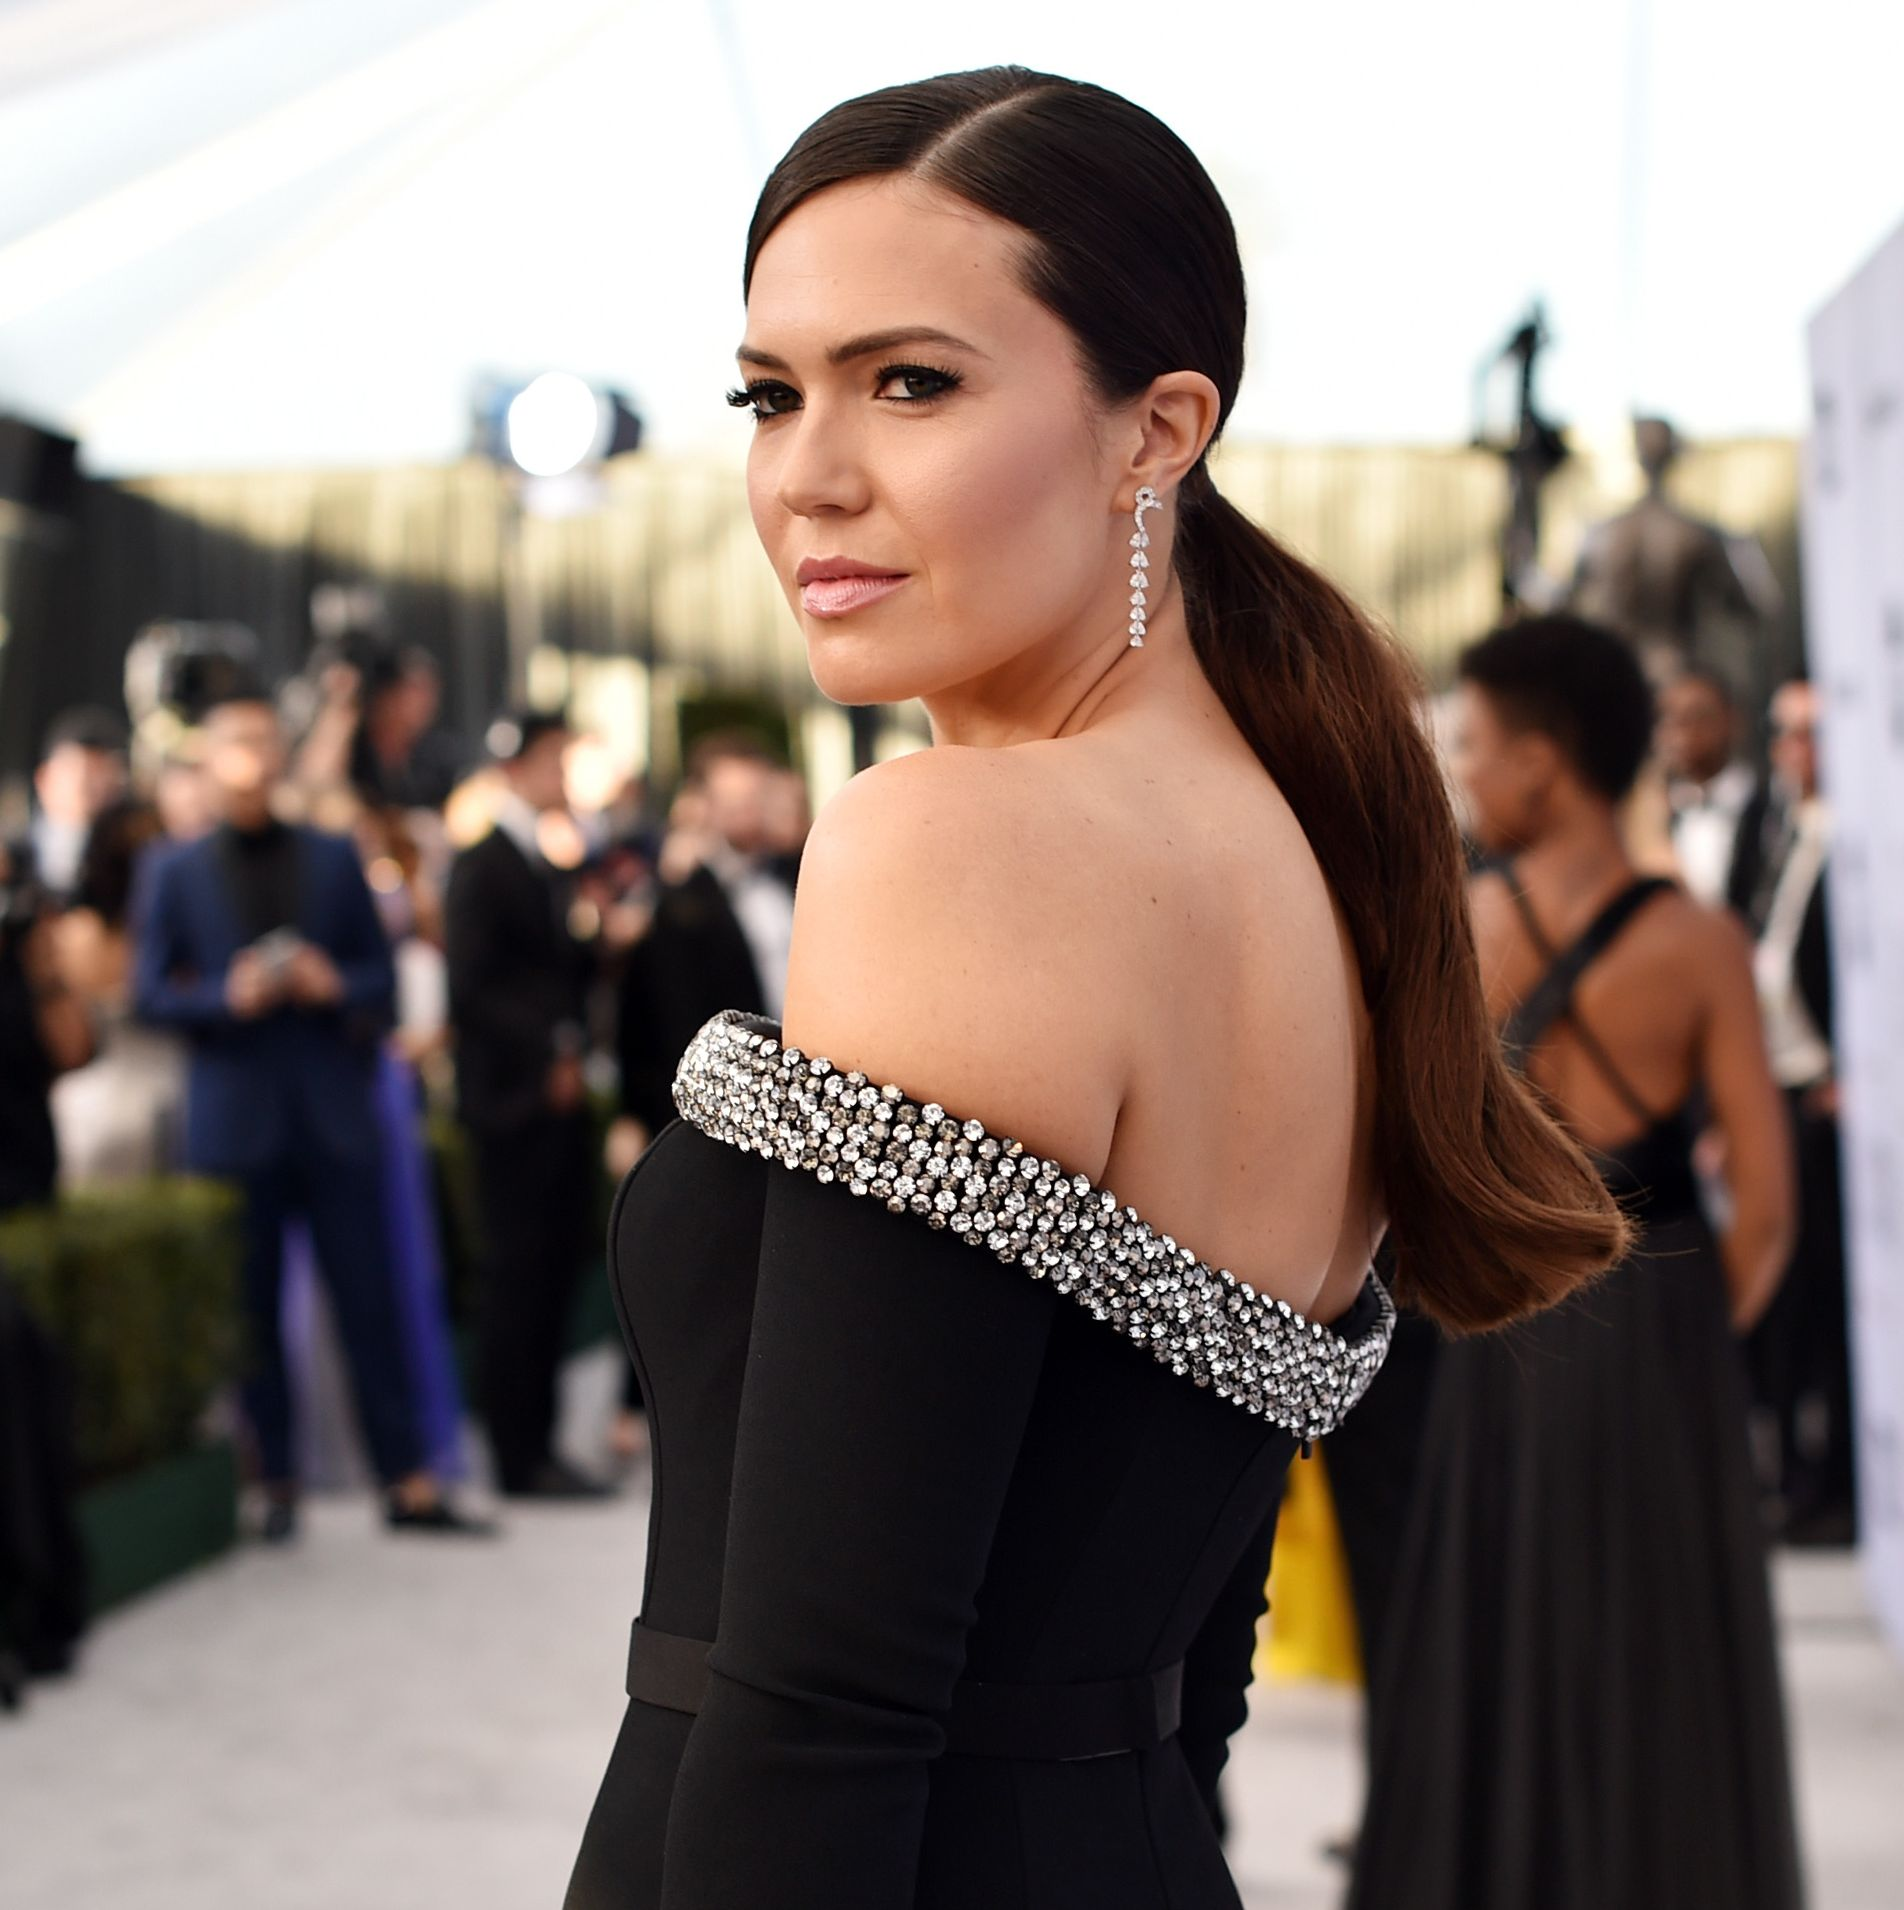 Mandy Moore Says Ex-Husband Ryan Adams Was 'Controlling' and Psychologically Abusive